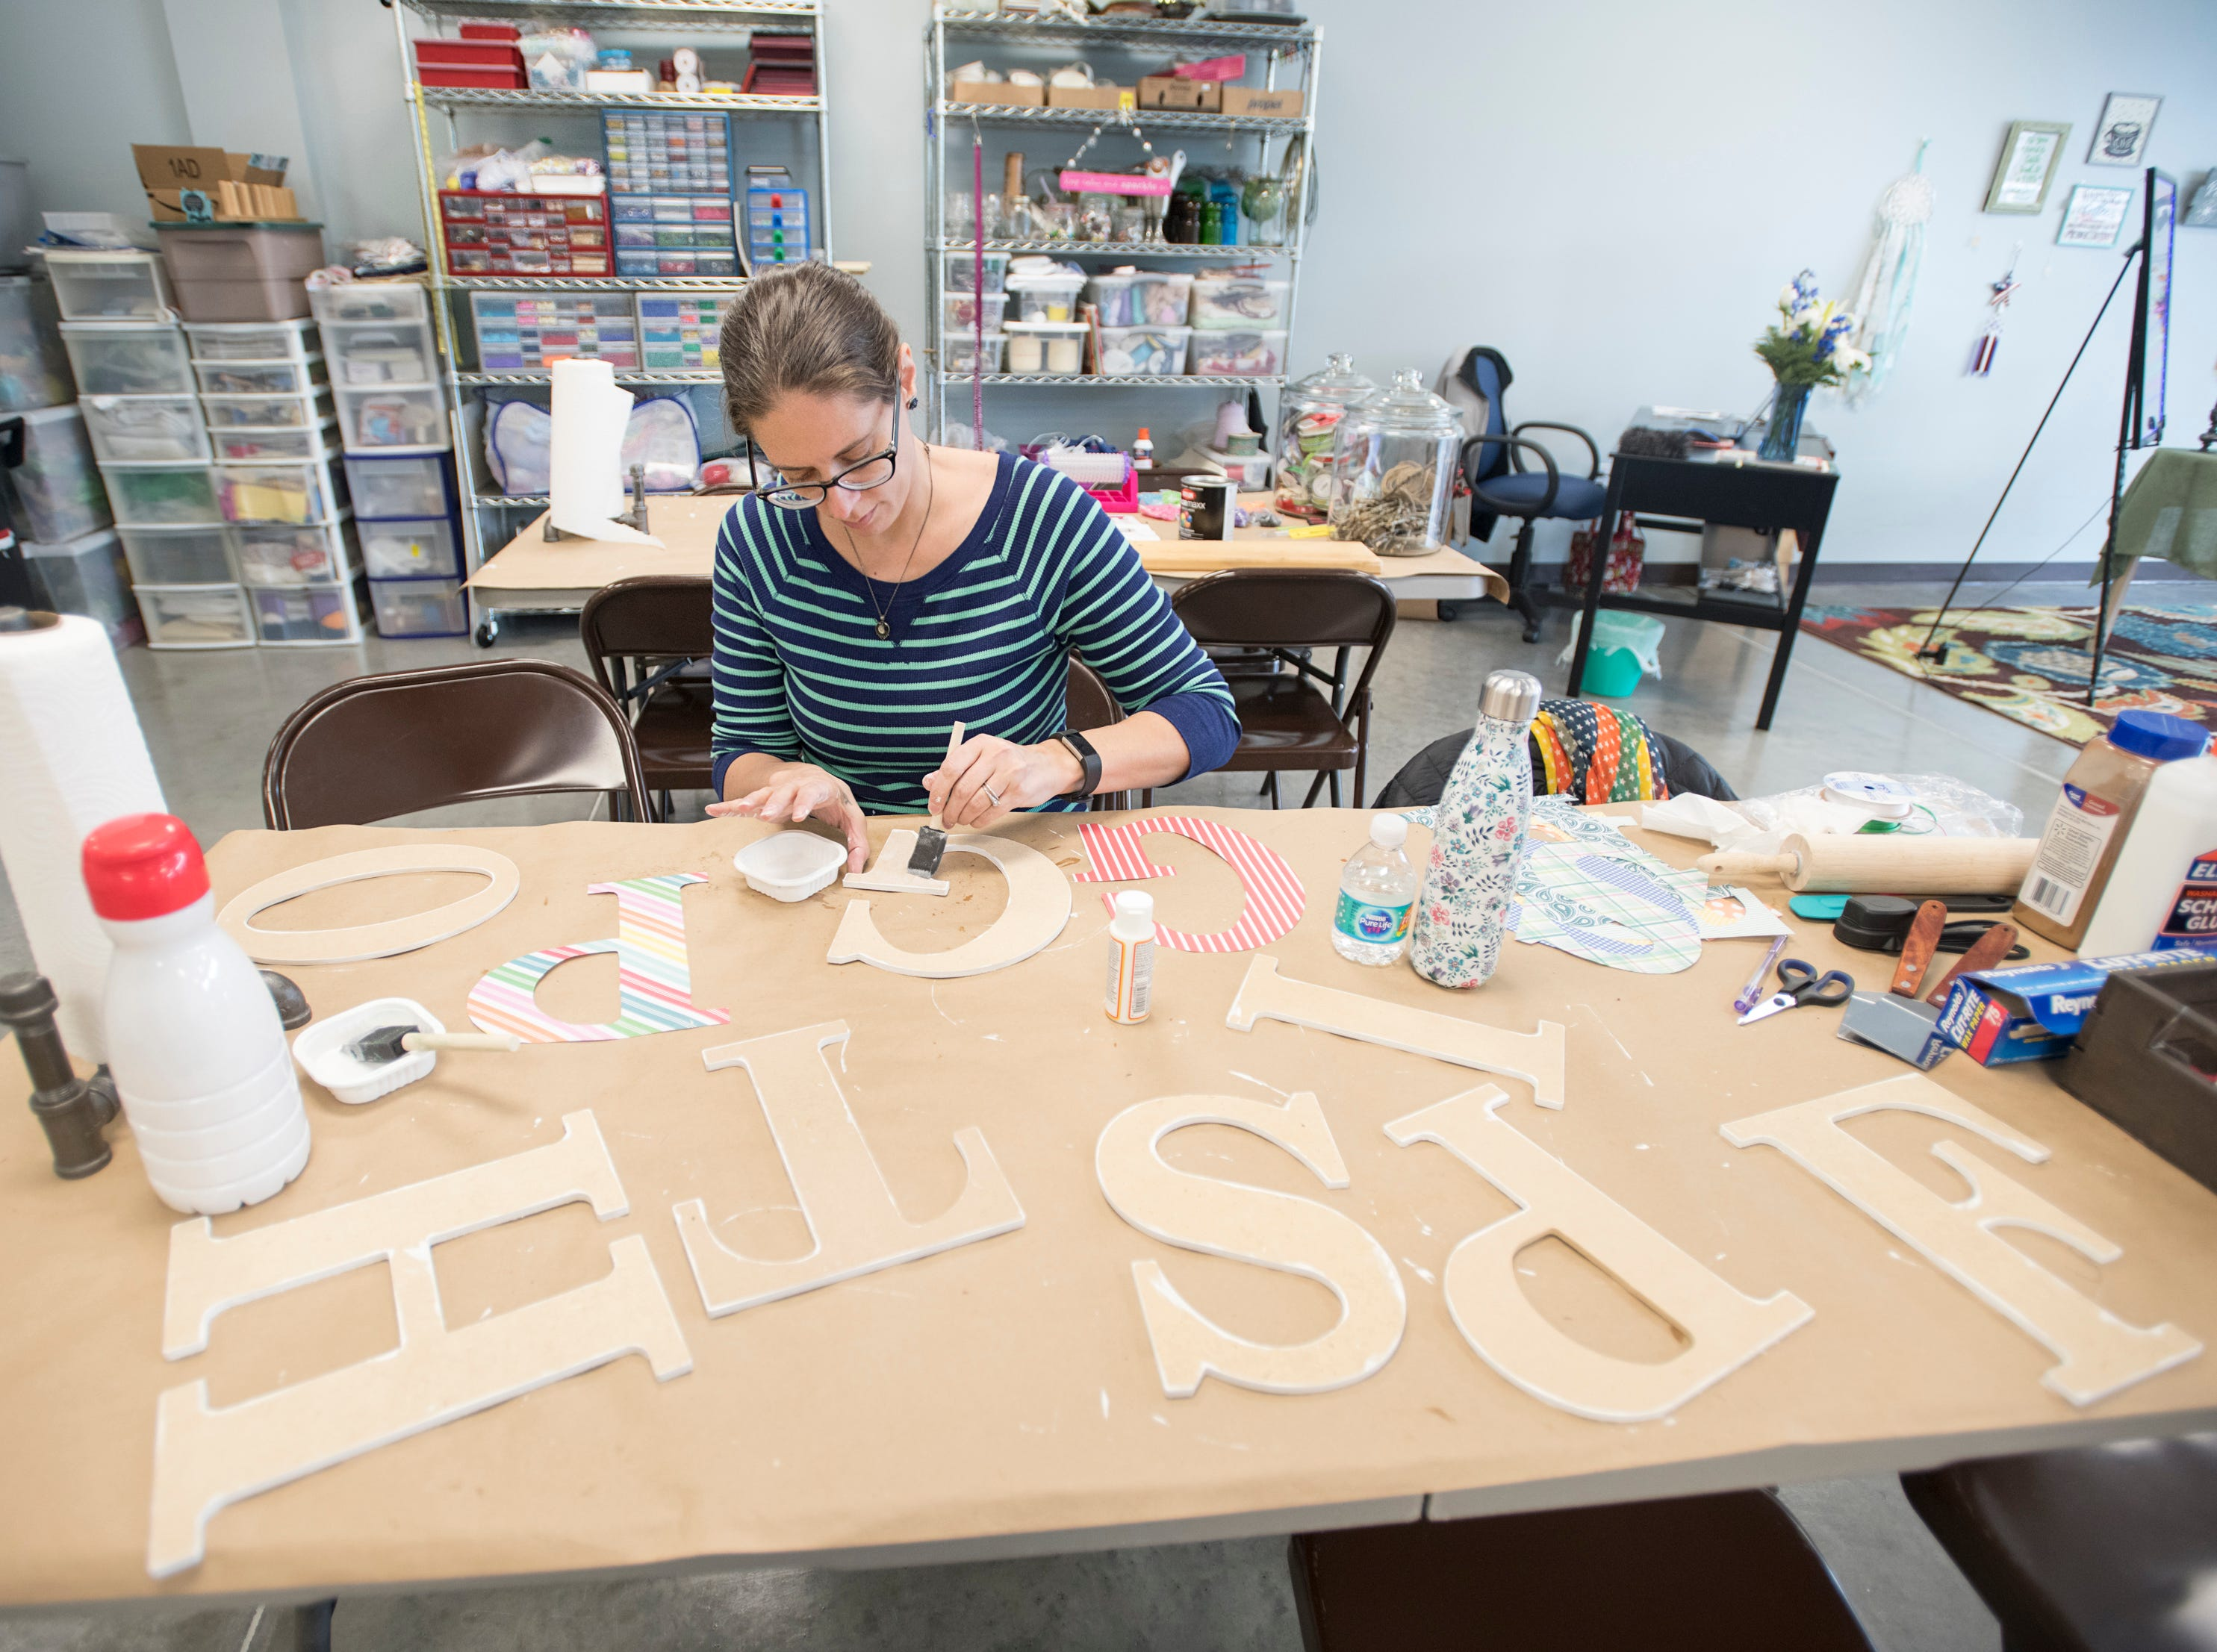 Maker's Loft creative hub in Pensacola offers workshop studio, DIY ideas and more